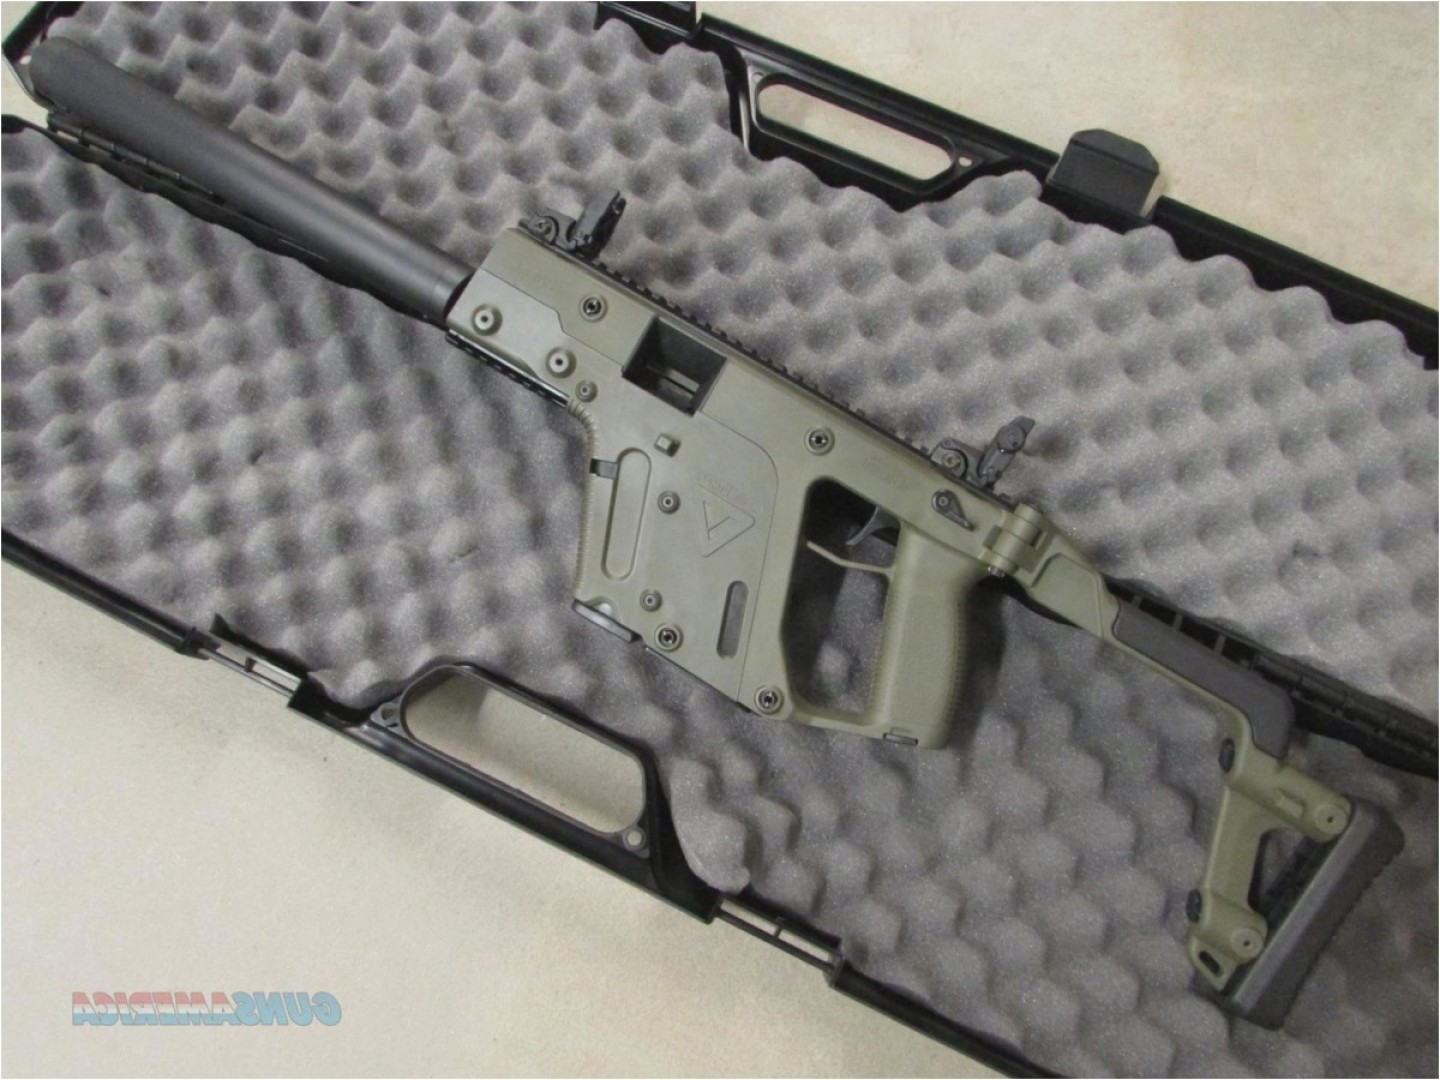 Kriss Vector Differences: Kriss Vector Sdp Urban Survivor Blog Wrong Place Wrong Time Right Gear